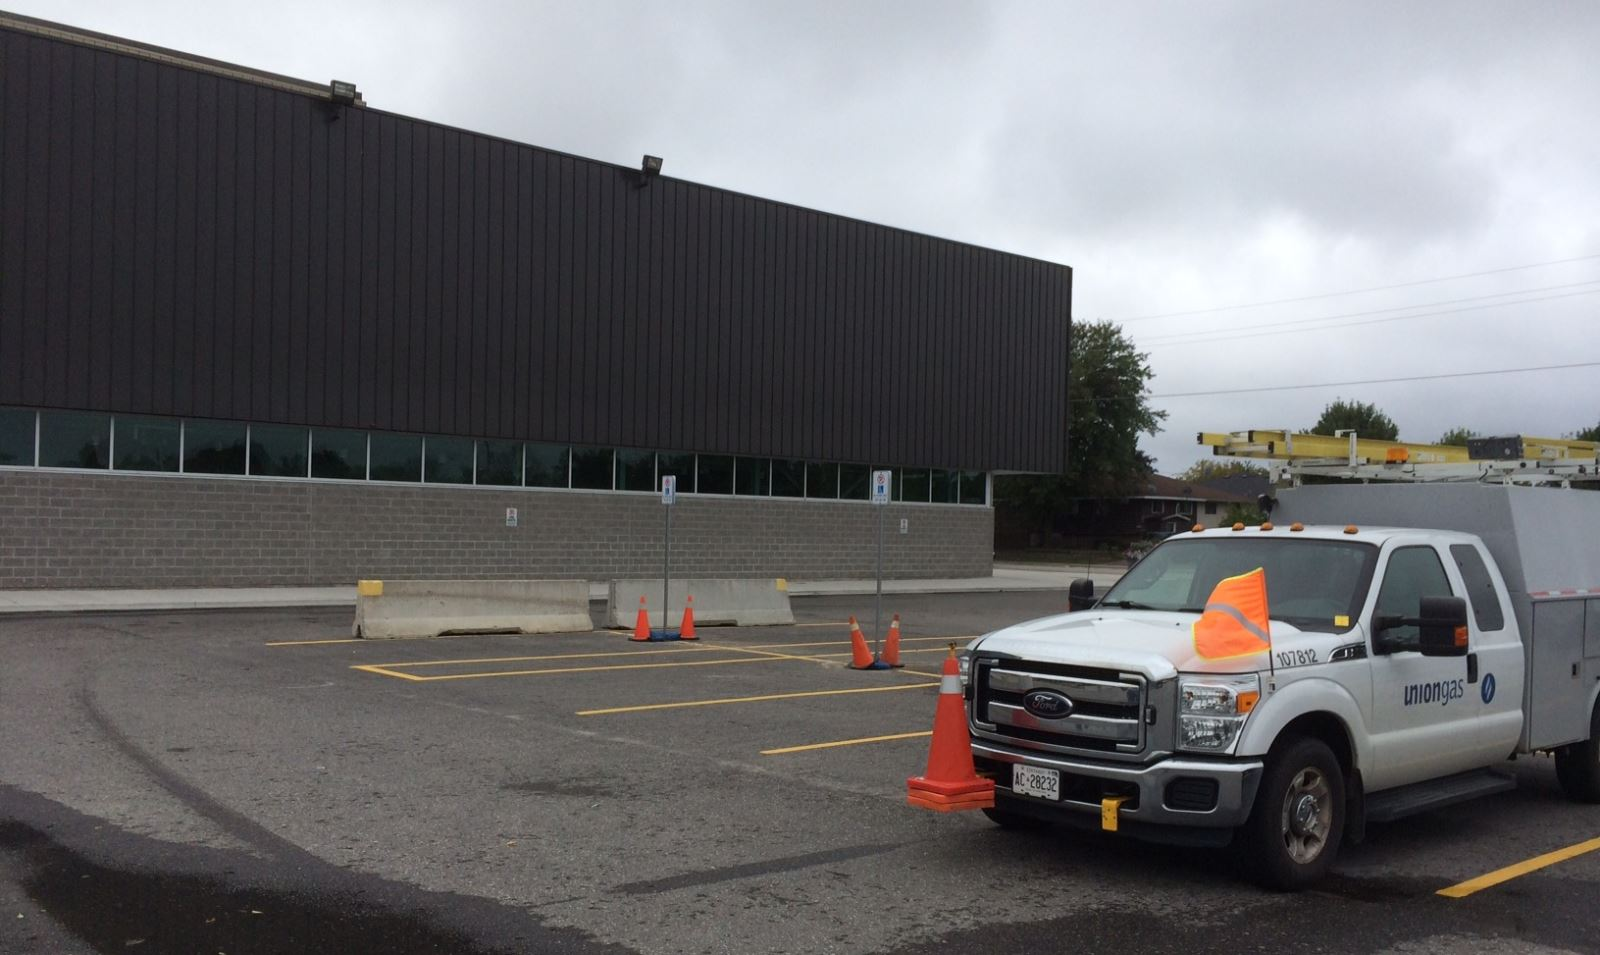 A Gas Leak This Morning At Memorial Gardens Emptied The Building While Union Gas Workers Checked For The Source Photo By Jeff Turl